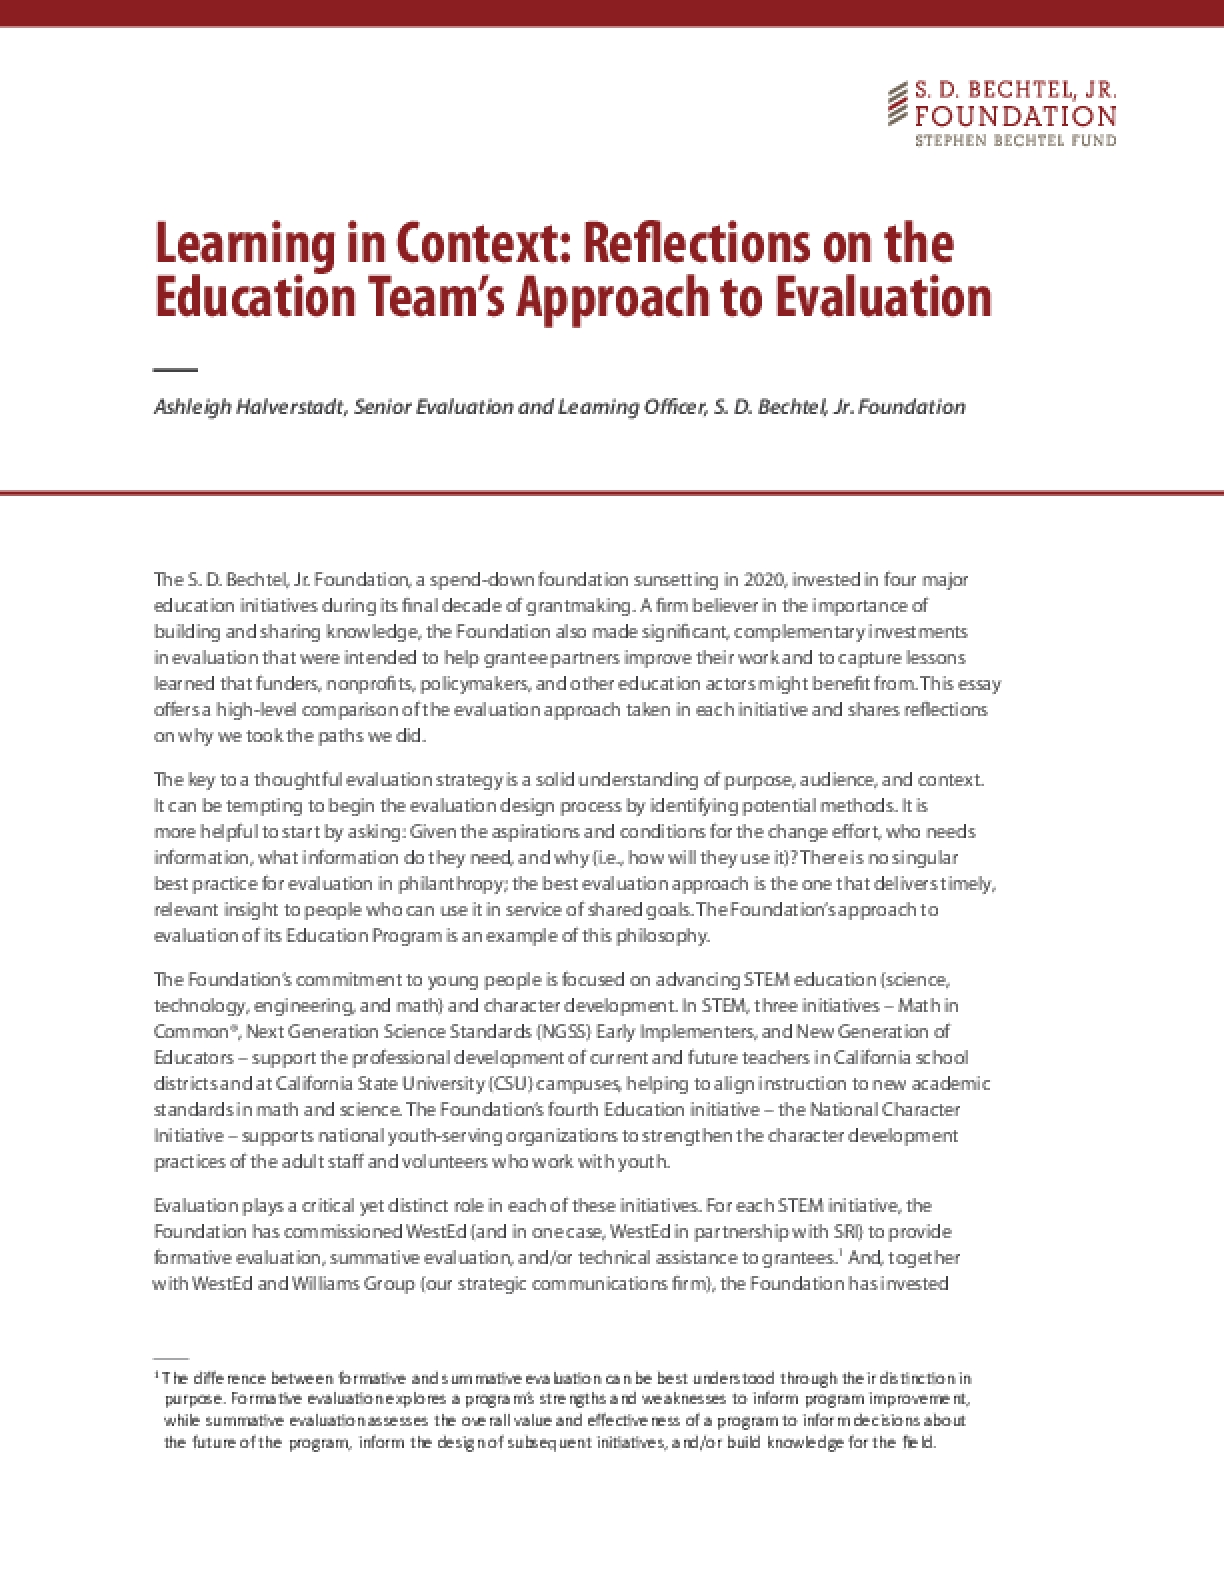 Learning in Context: Reflections on the Education Team's Approach to Evaluation